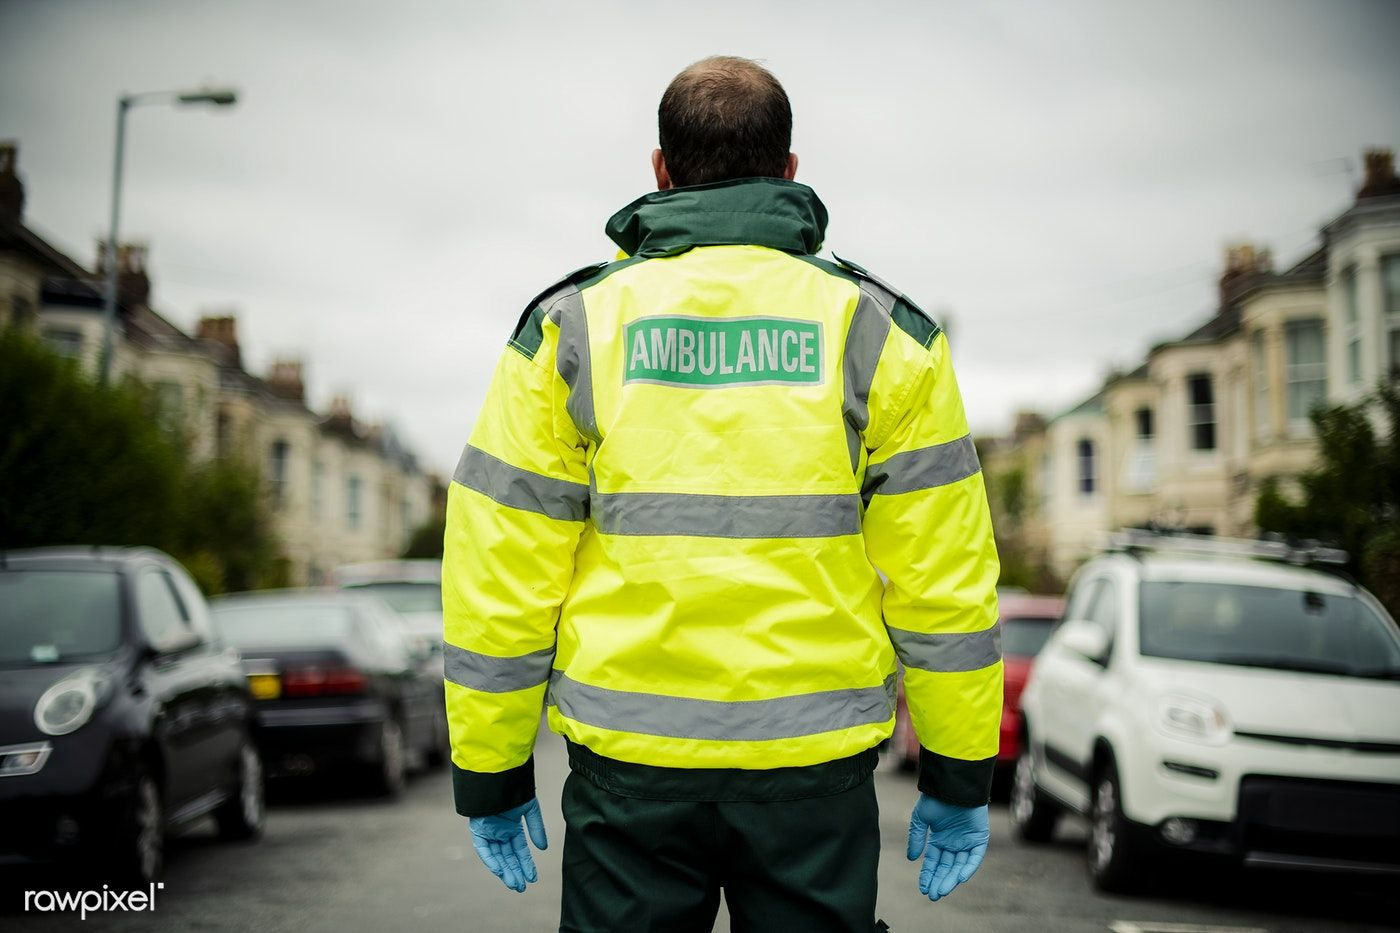 Download premium image of portrait of a male paramedic in